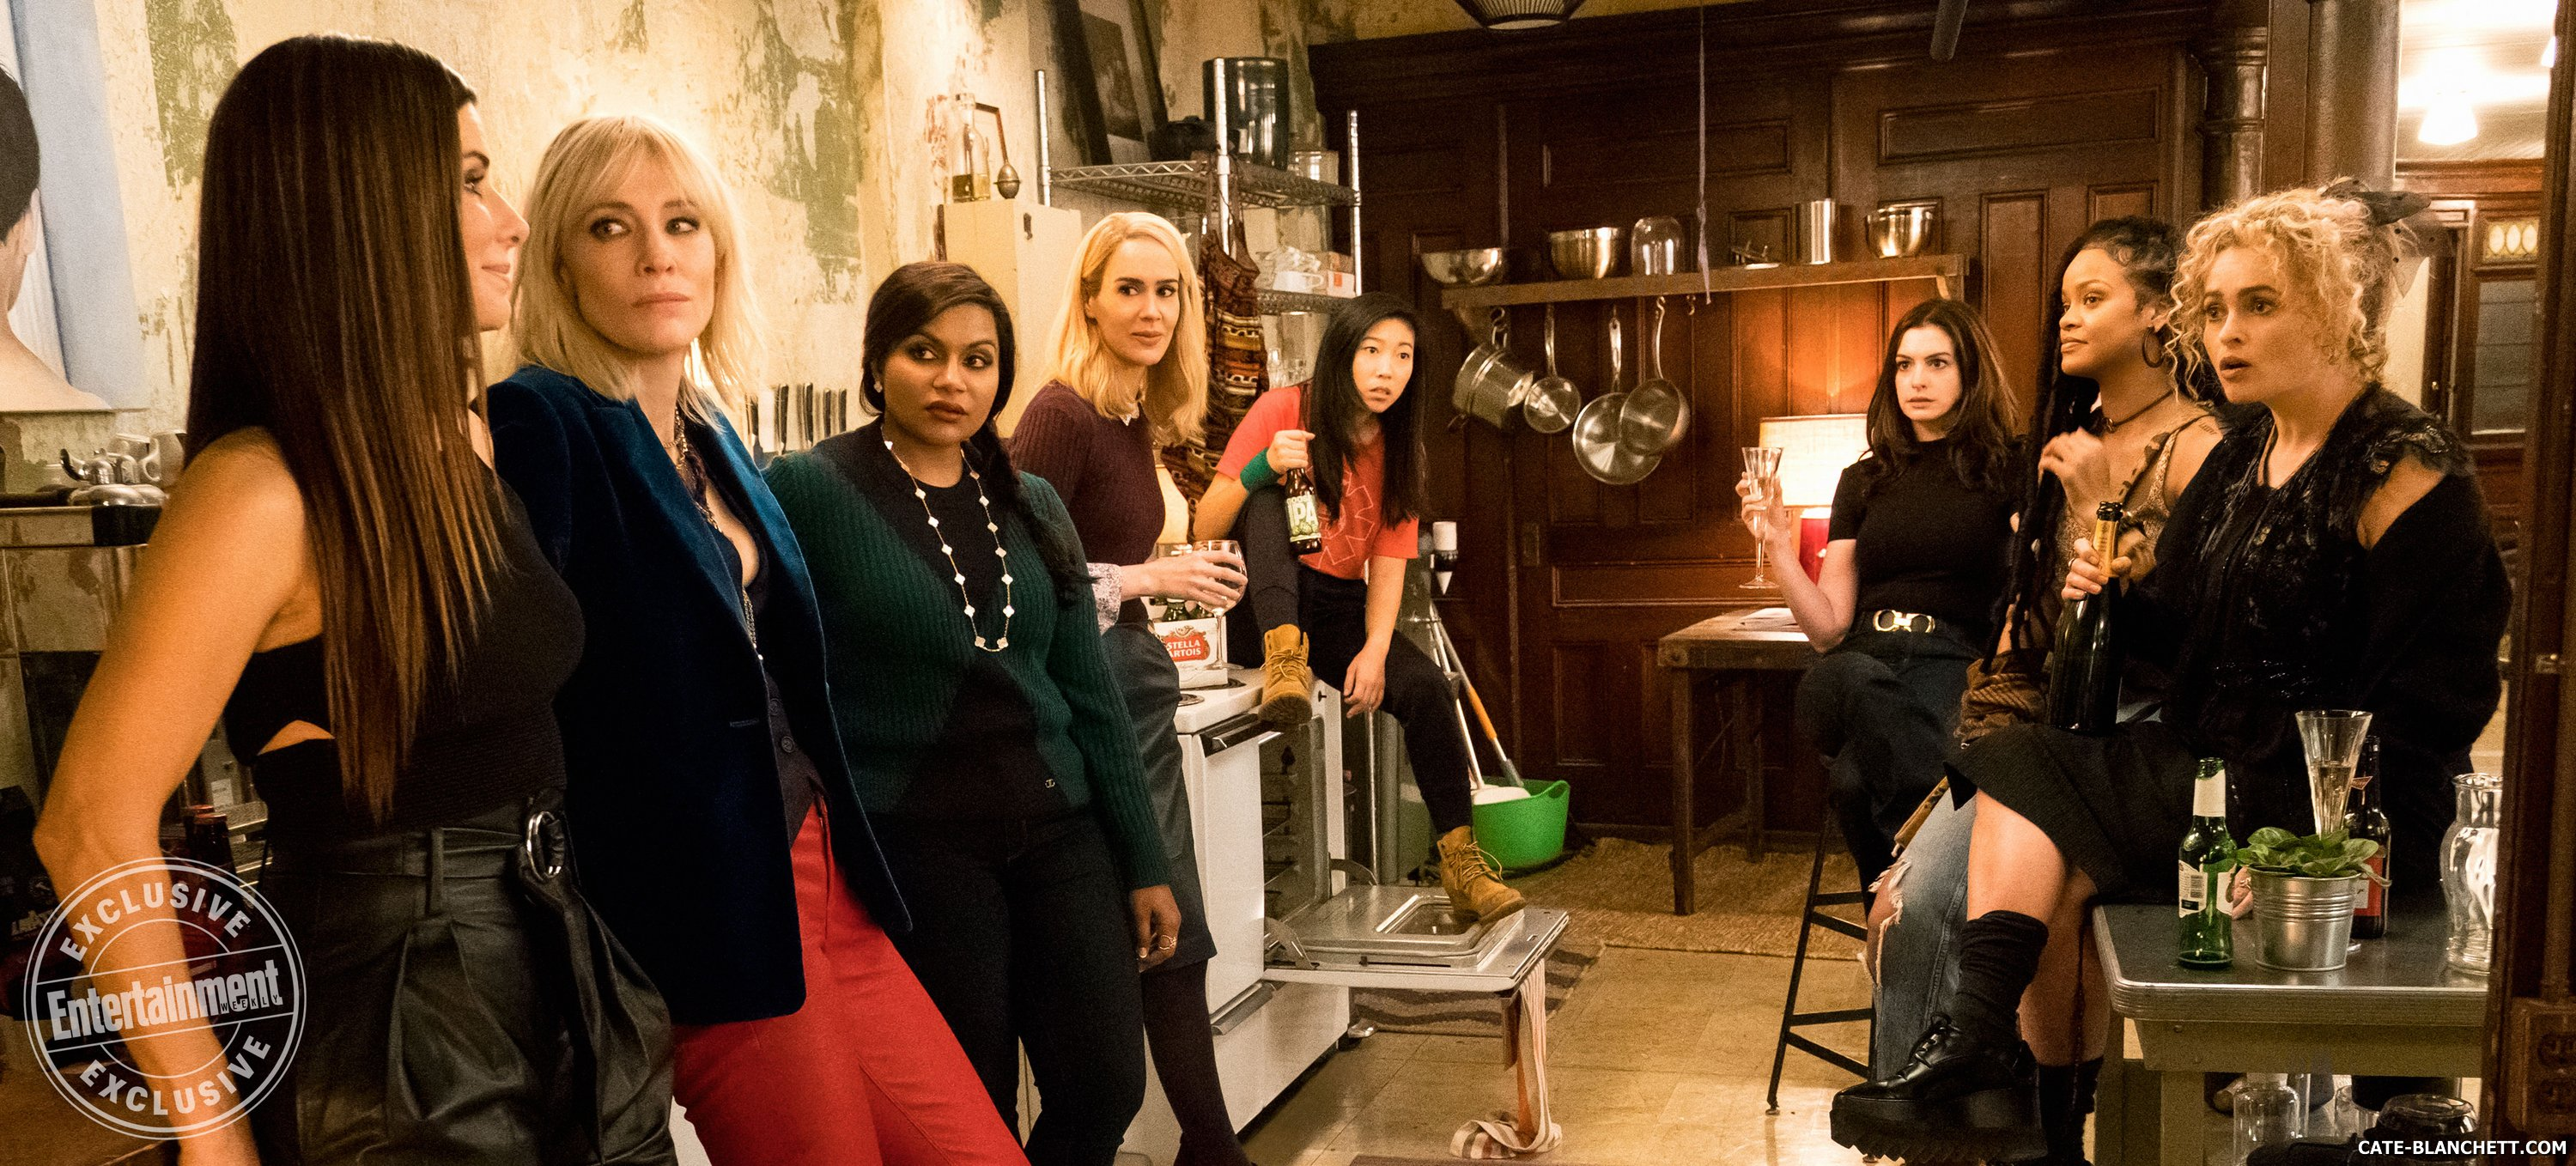 Ocean's 8: See Sandra Bullock, Cate Blanchett, and the gang in a new still for the movie